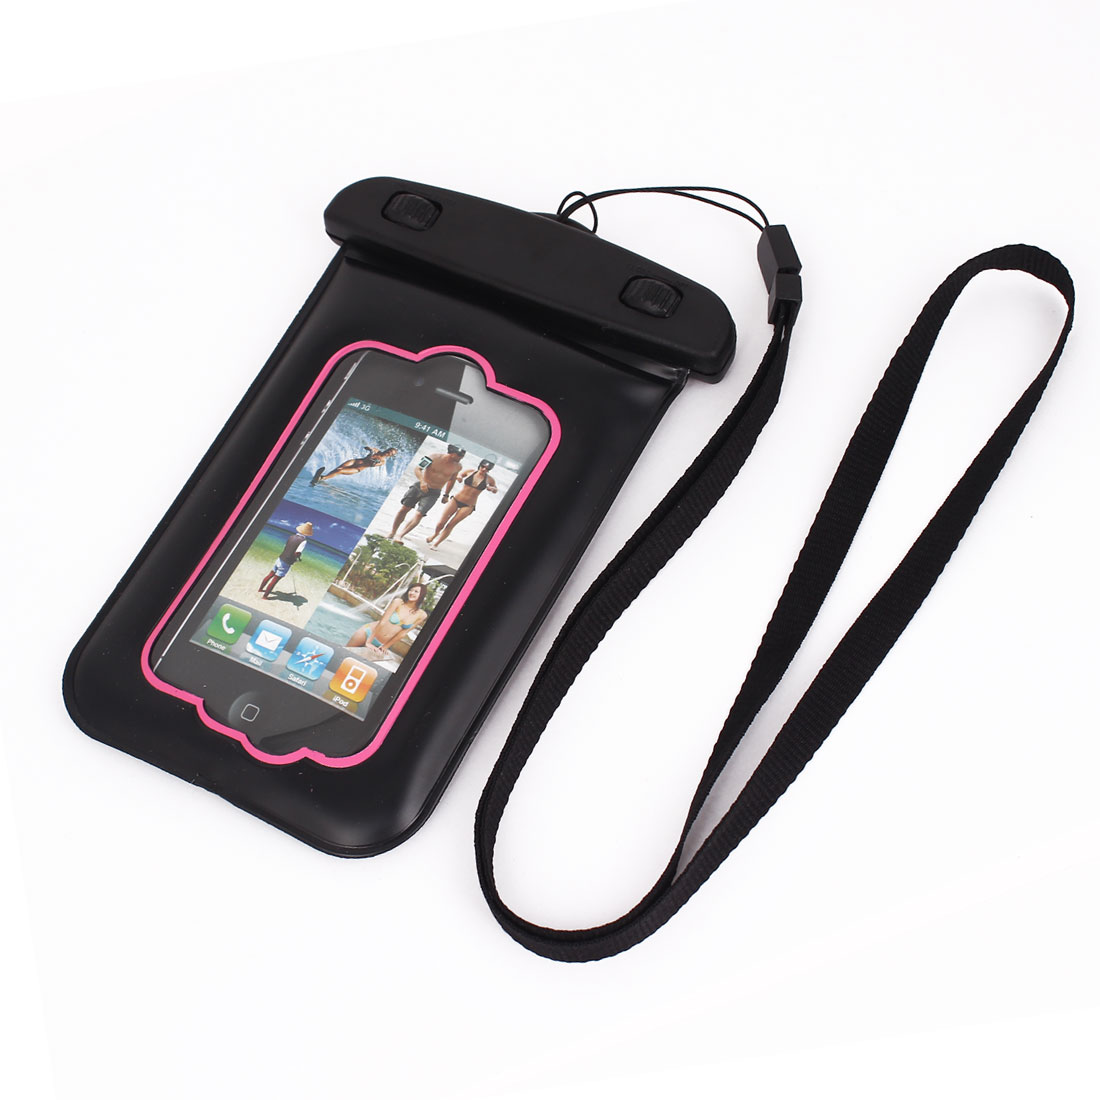 Waterproof Bag Holder Pouch Pink for iPhone 4G Plus w Neck Strap